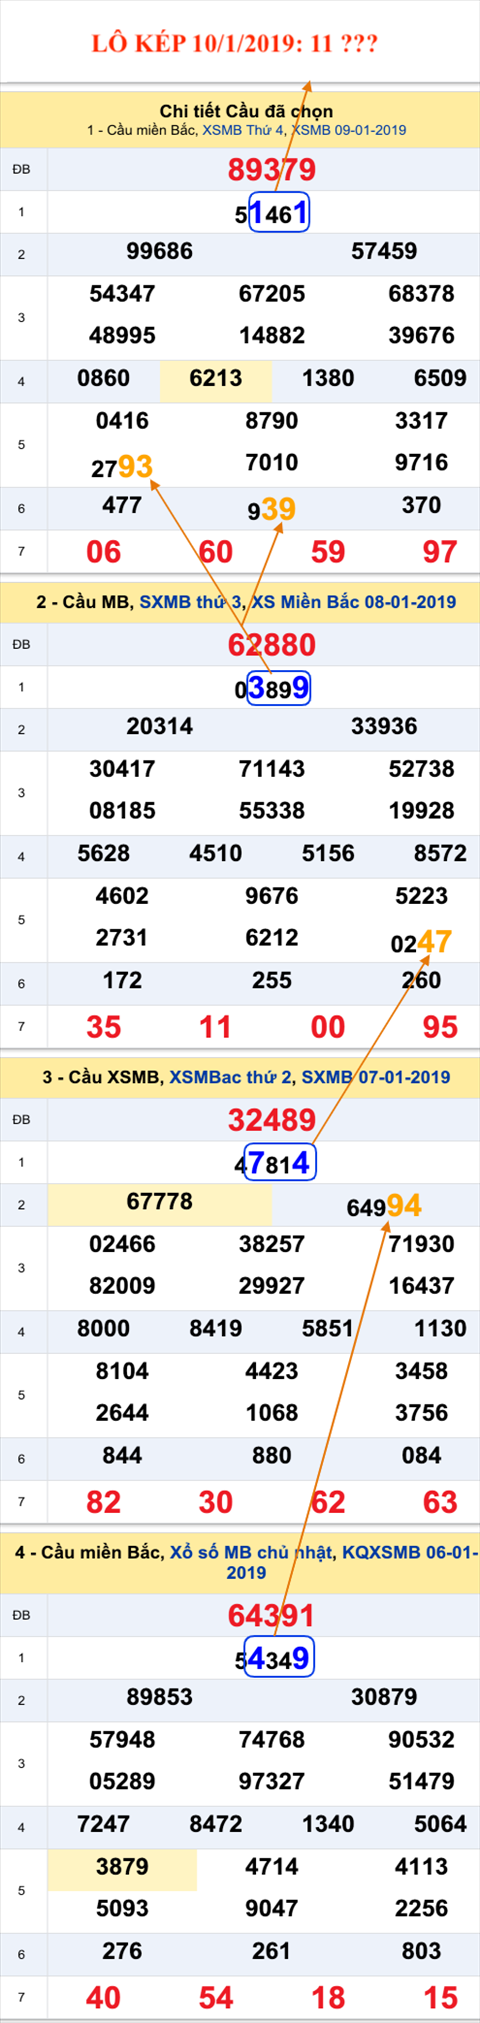 Lo kep XSMB - An so kep thu nhat hom nay 10-1-2019